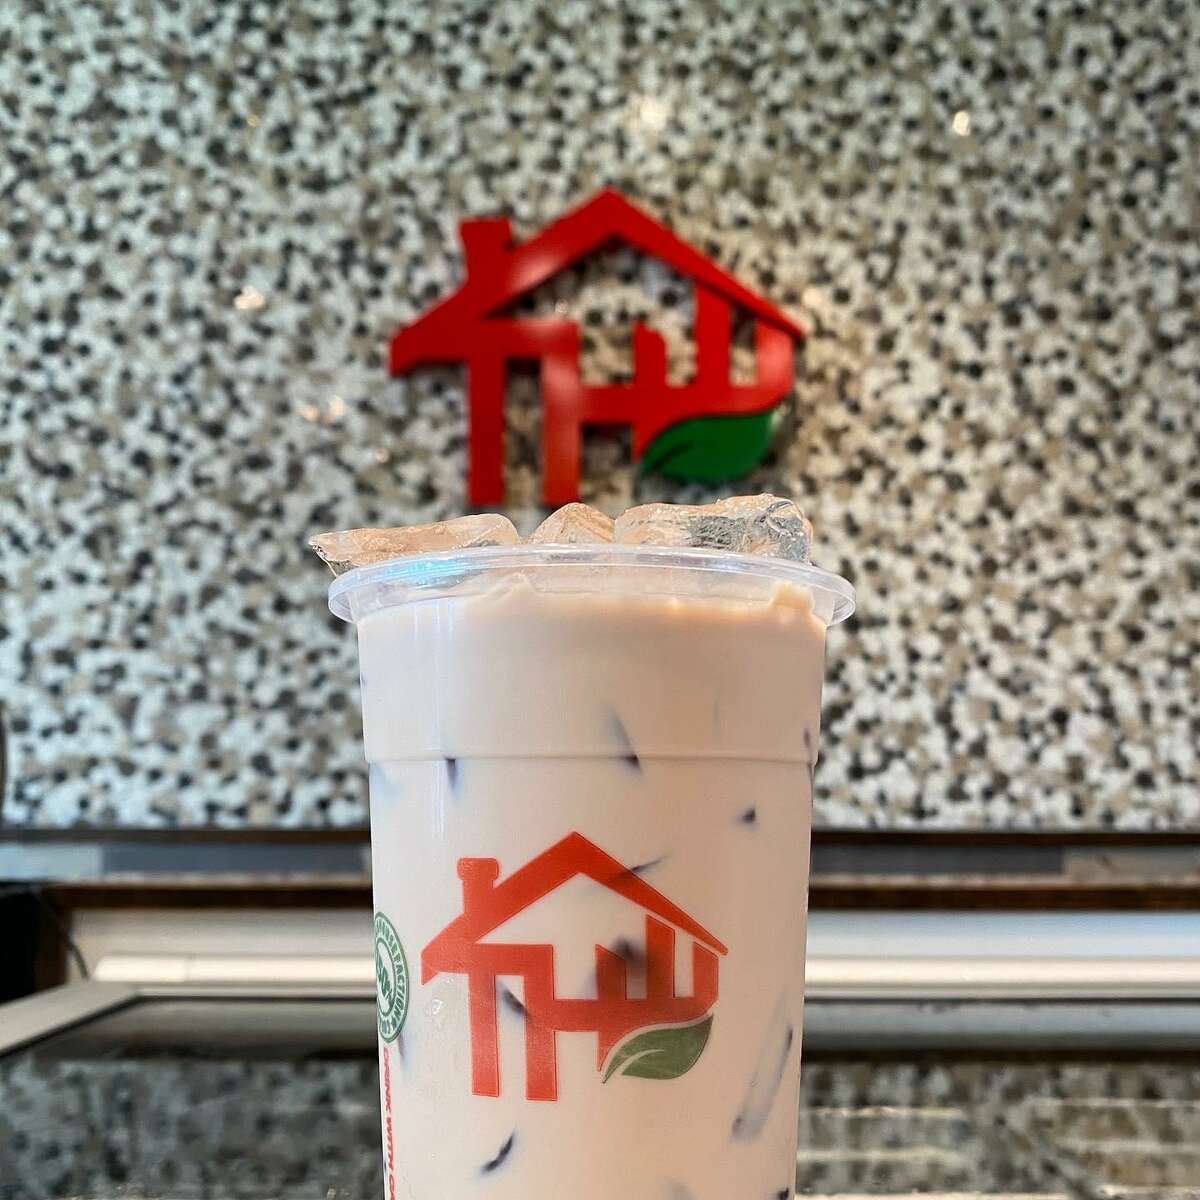 The Teahouse Tapioca and Tea menu includes a variety of cold or hot teas.